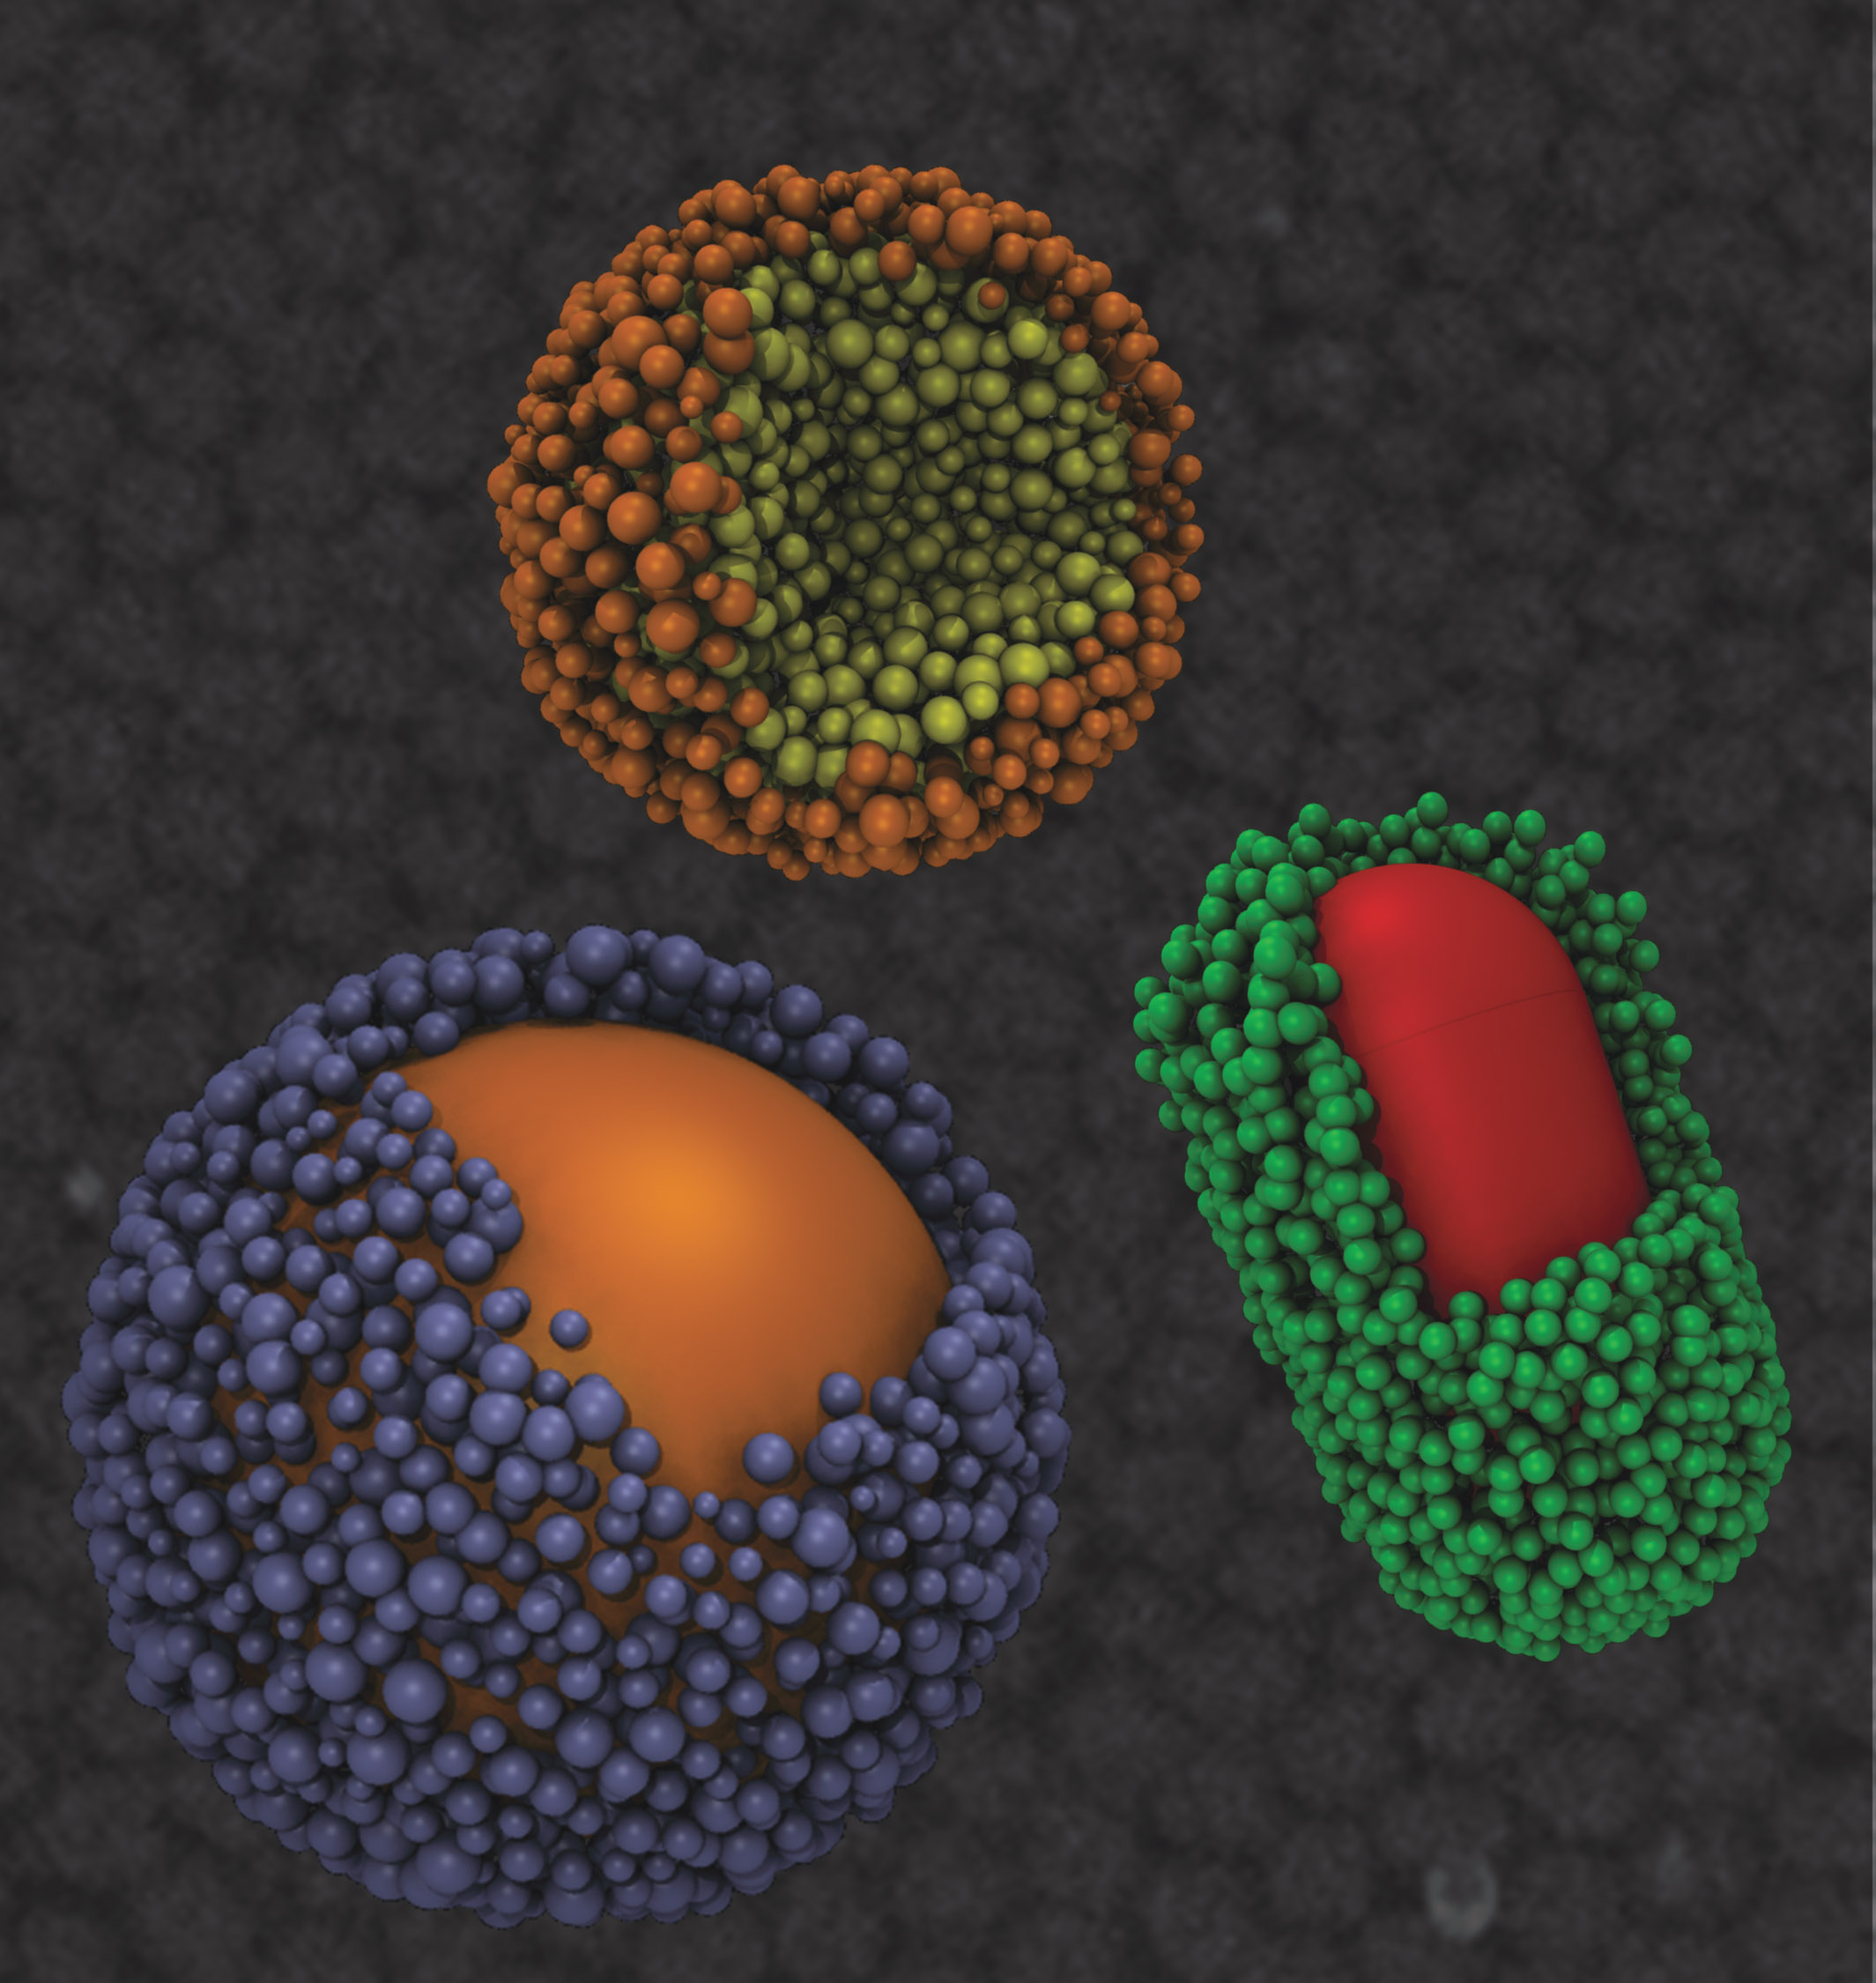 Engineering researchers have discovered that under the right circumstances, basic atomic forces can be exploited to enable nanoparticles to assemble into superclusters that are uniform in size and share attributes with viruses. Credit: T.D.Nguyen, Glotzer Group, University of Michigan